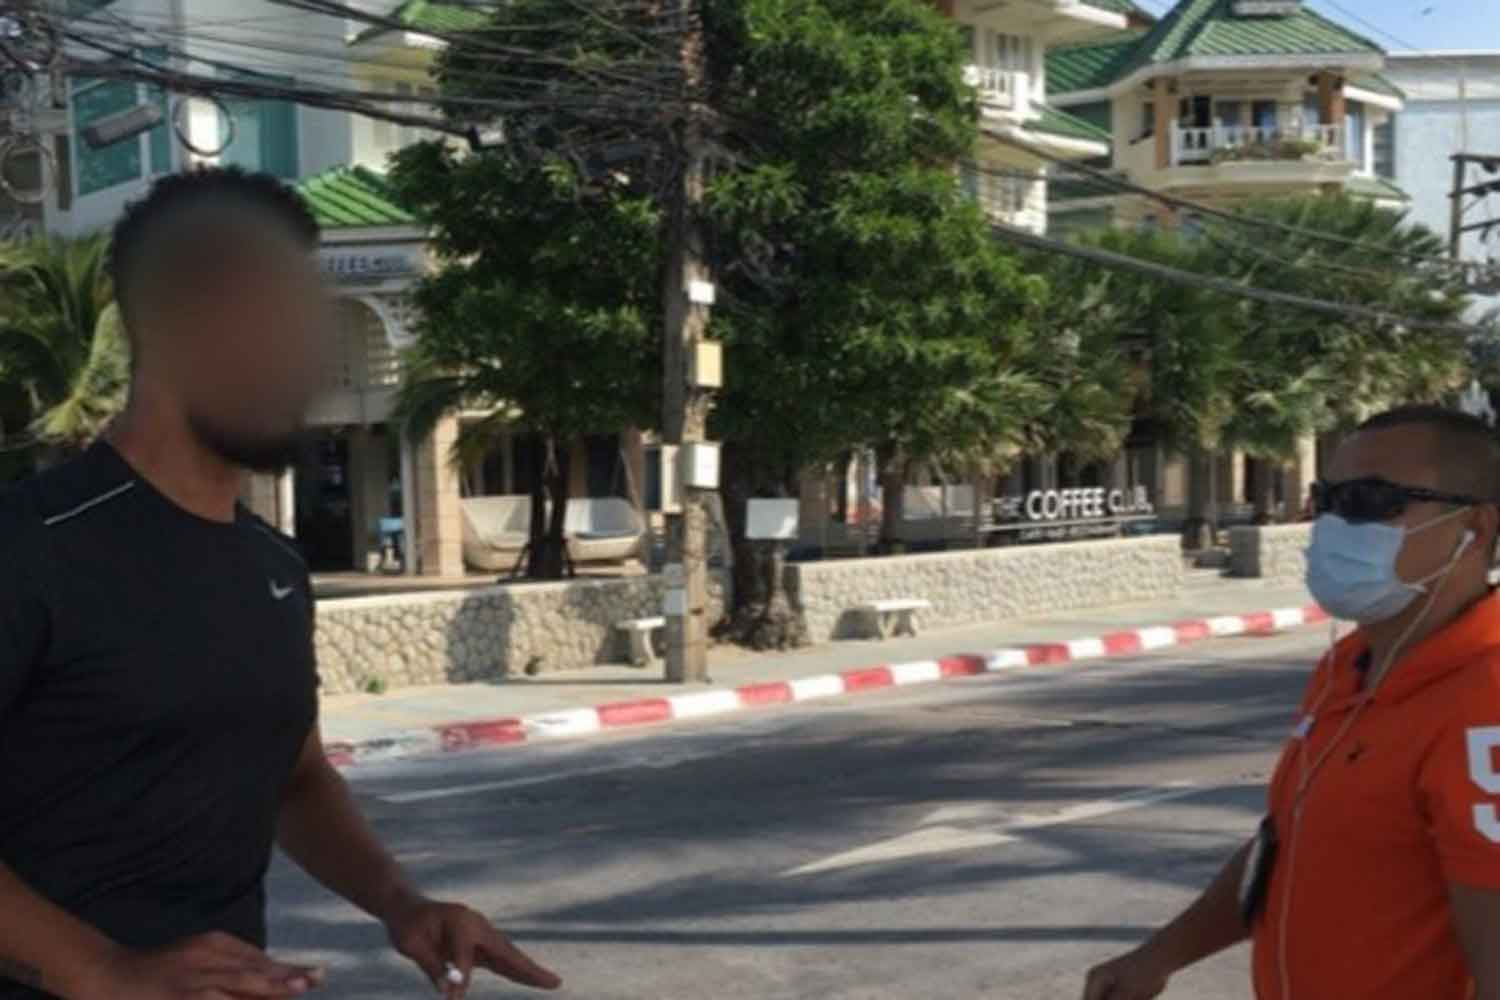 A French tourist, left, is arrested by police in Phuket for not wearing a face mask while outdoors. (Photo: Achadtaya Chuenniran)